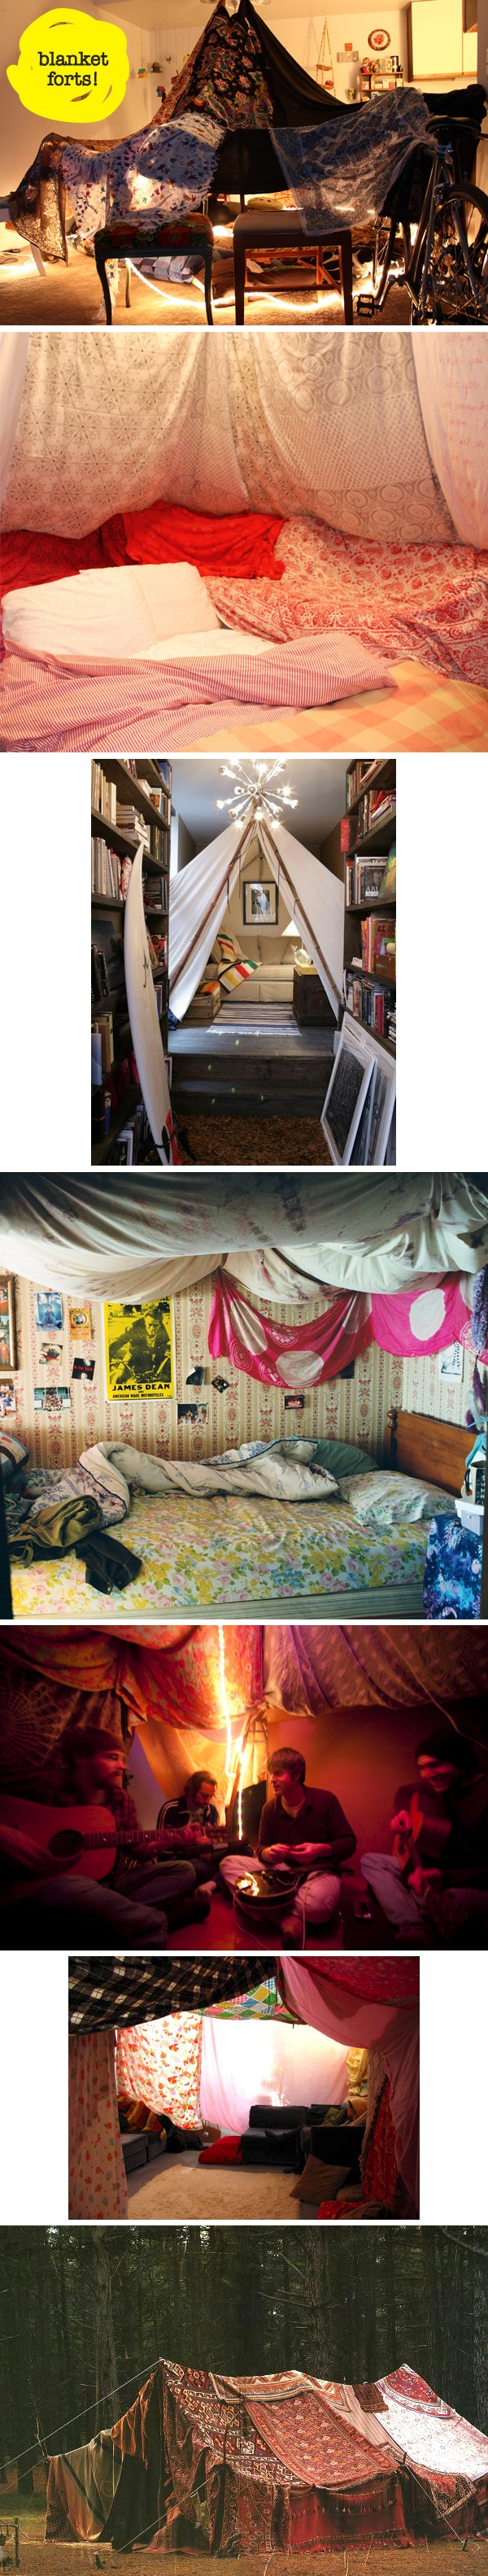 Blanket Forts Some Of The Best Memories Our Childhood